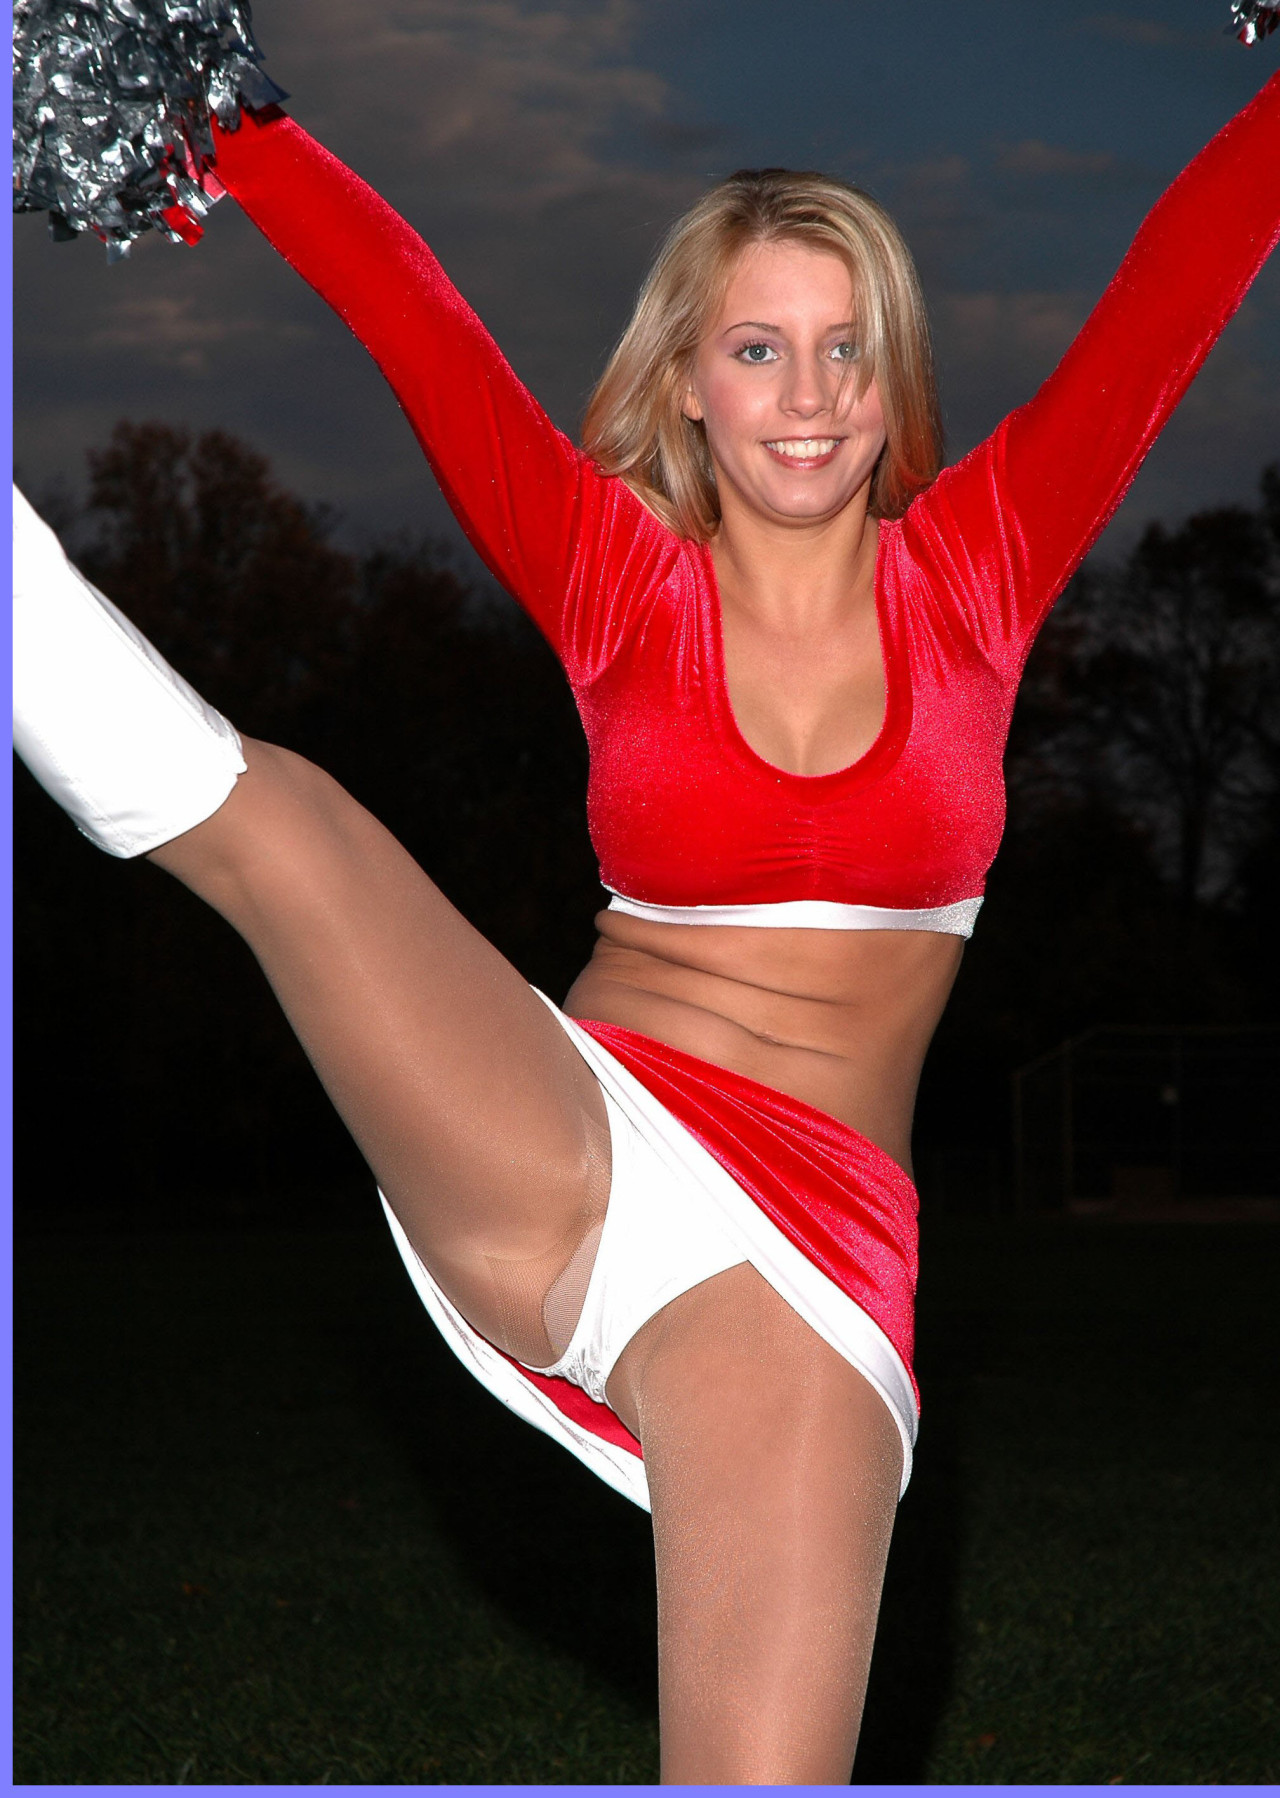 With you Upskirt cheerleaders dresses interesting question